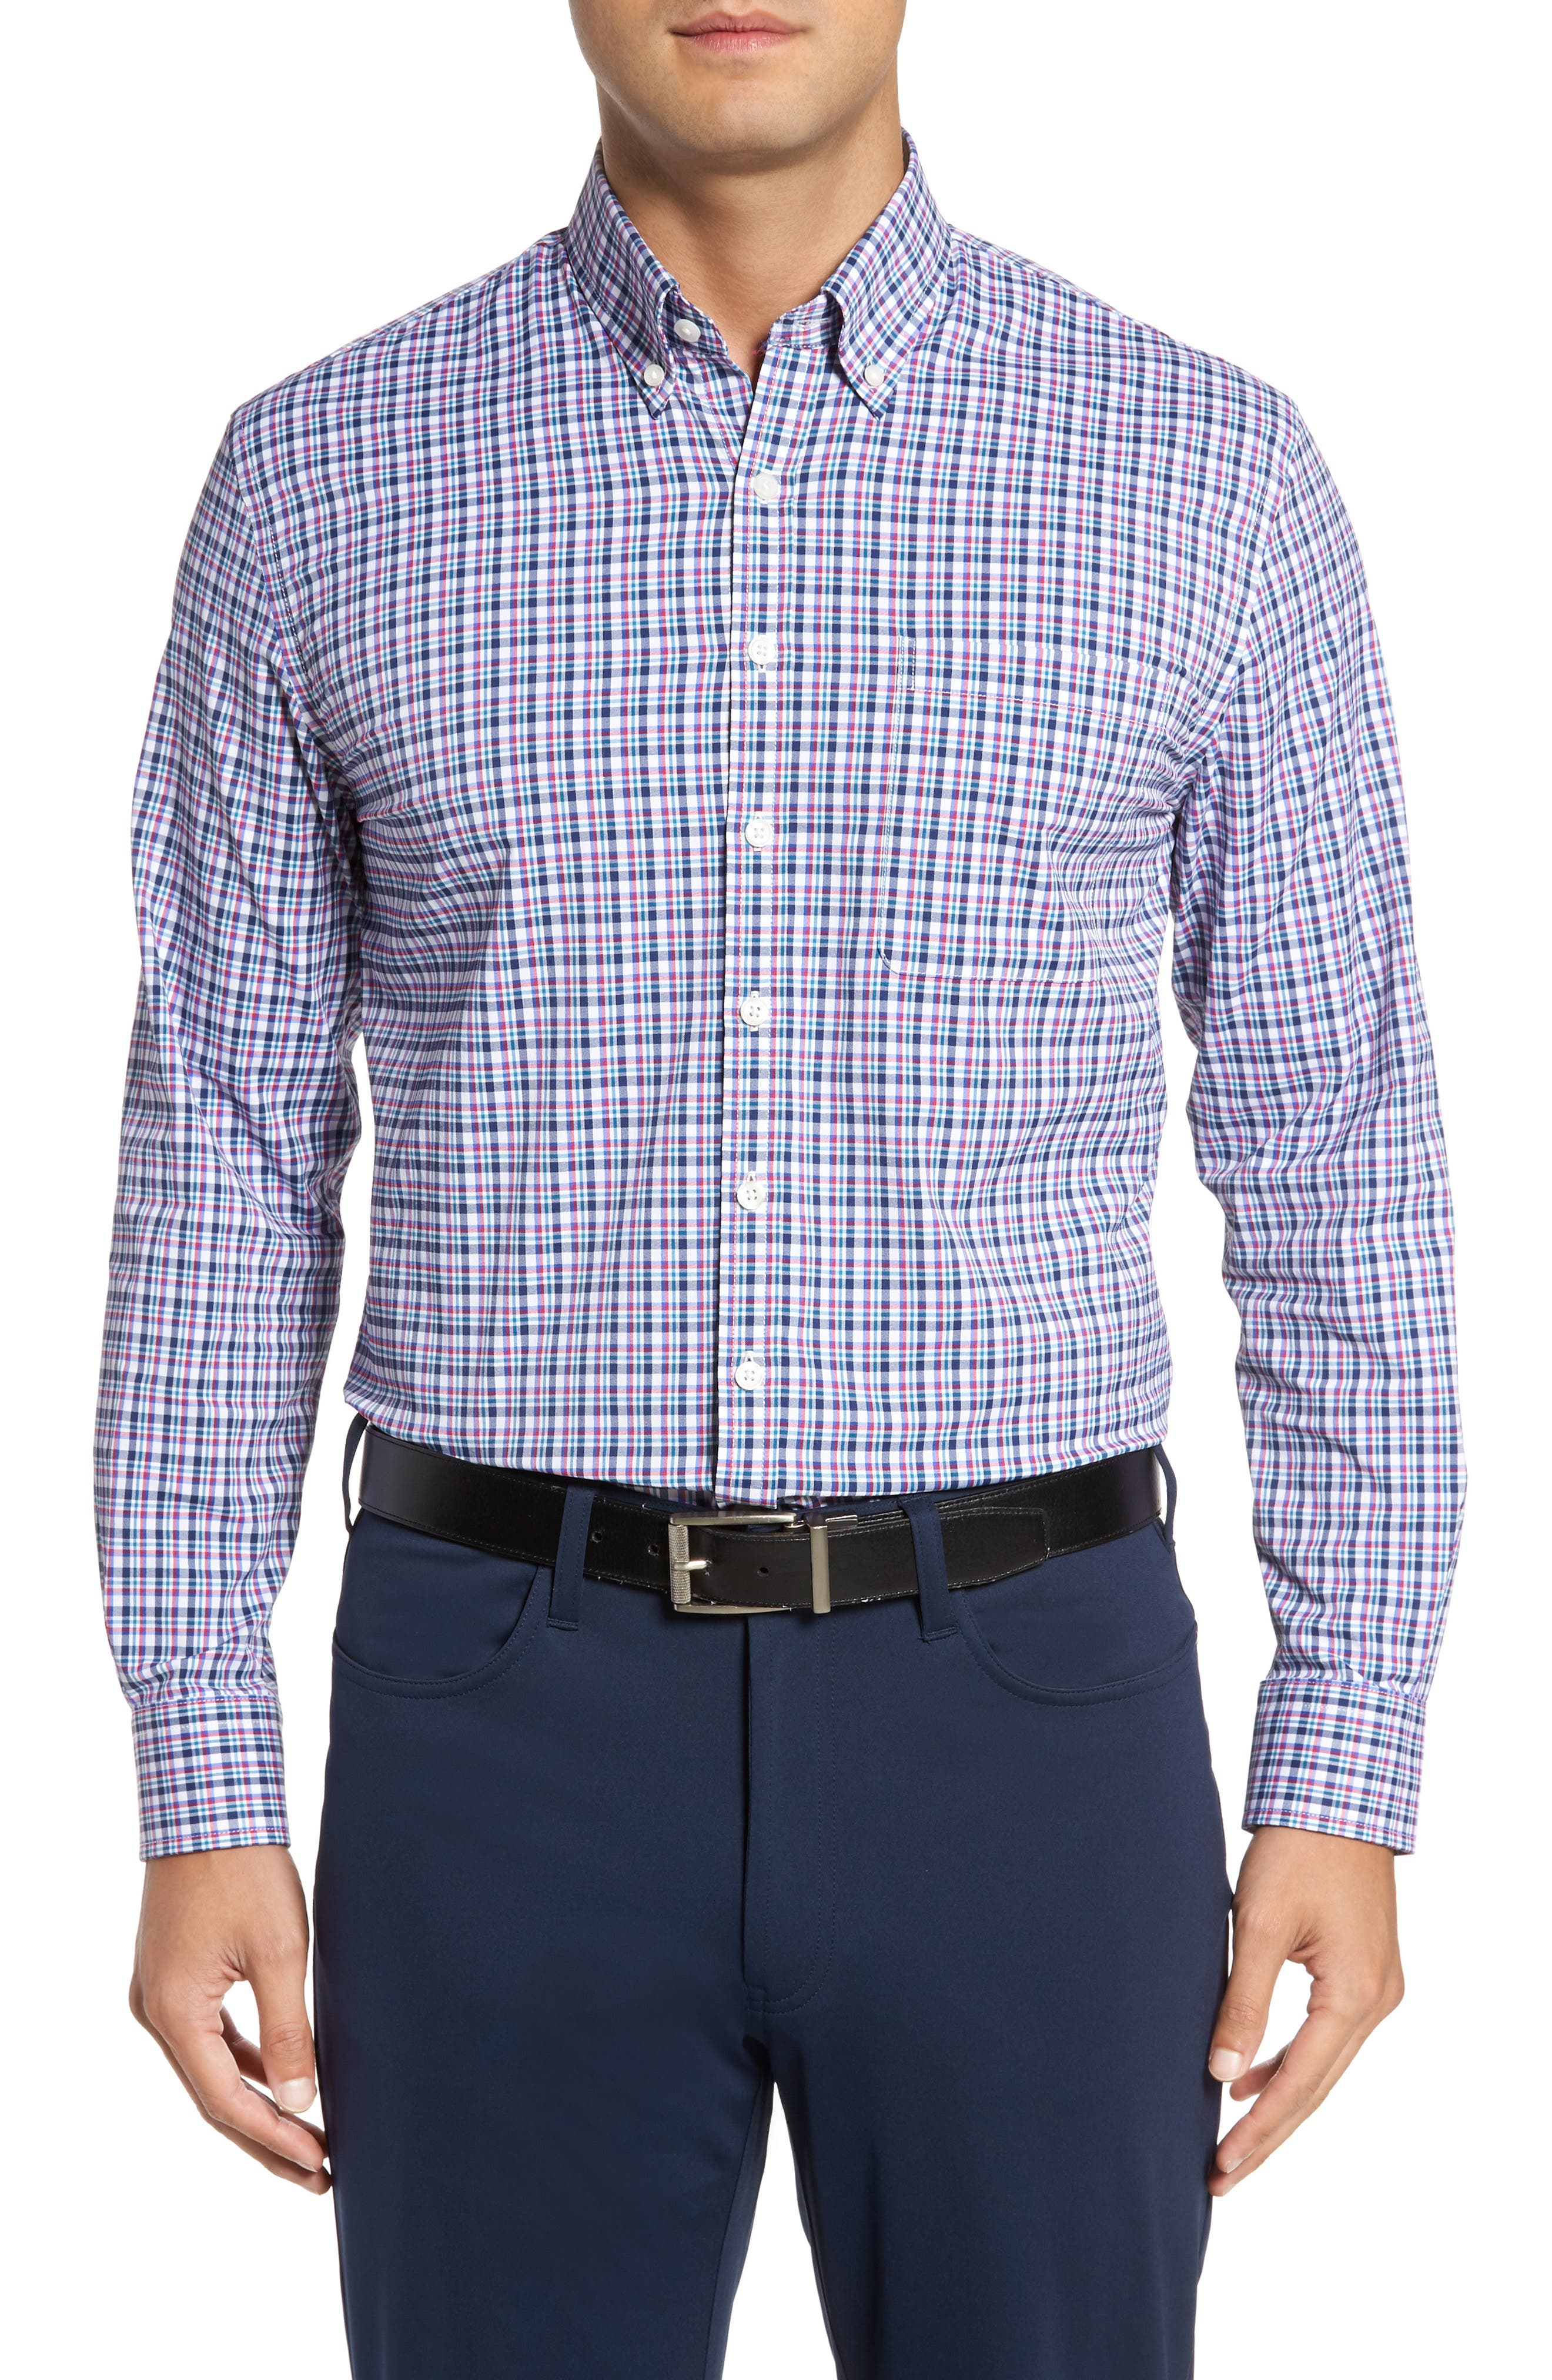 Matthers Easy Care Plaid Sport Shirt,                         Main,                         color, 490